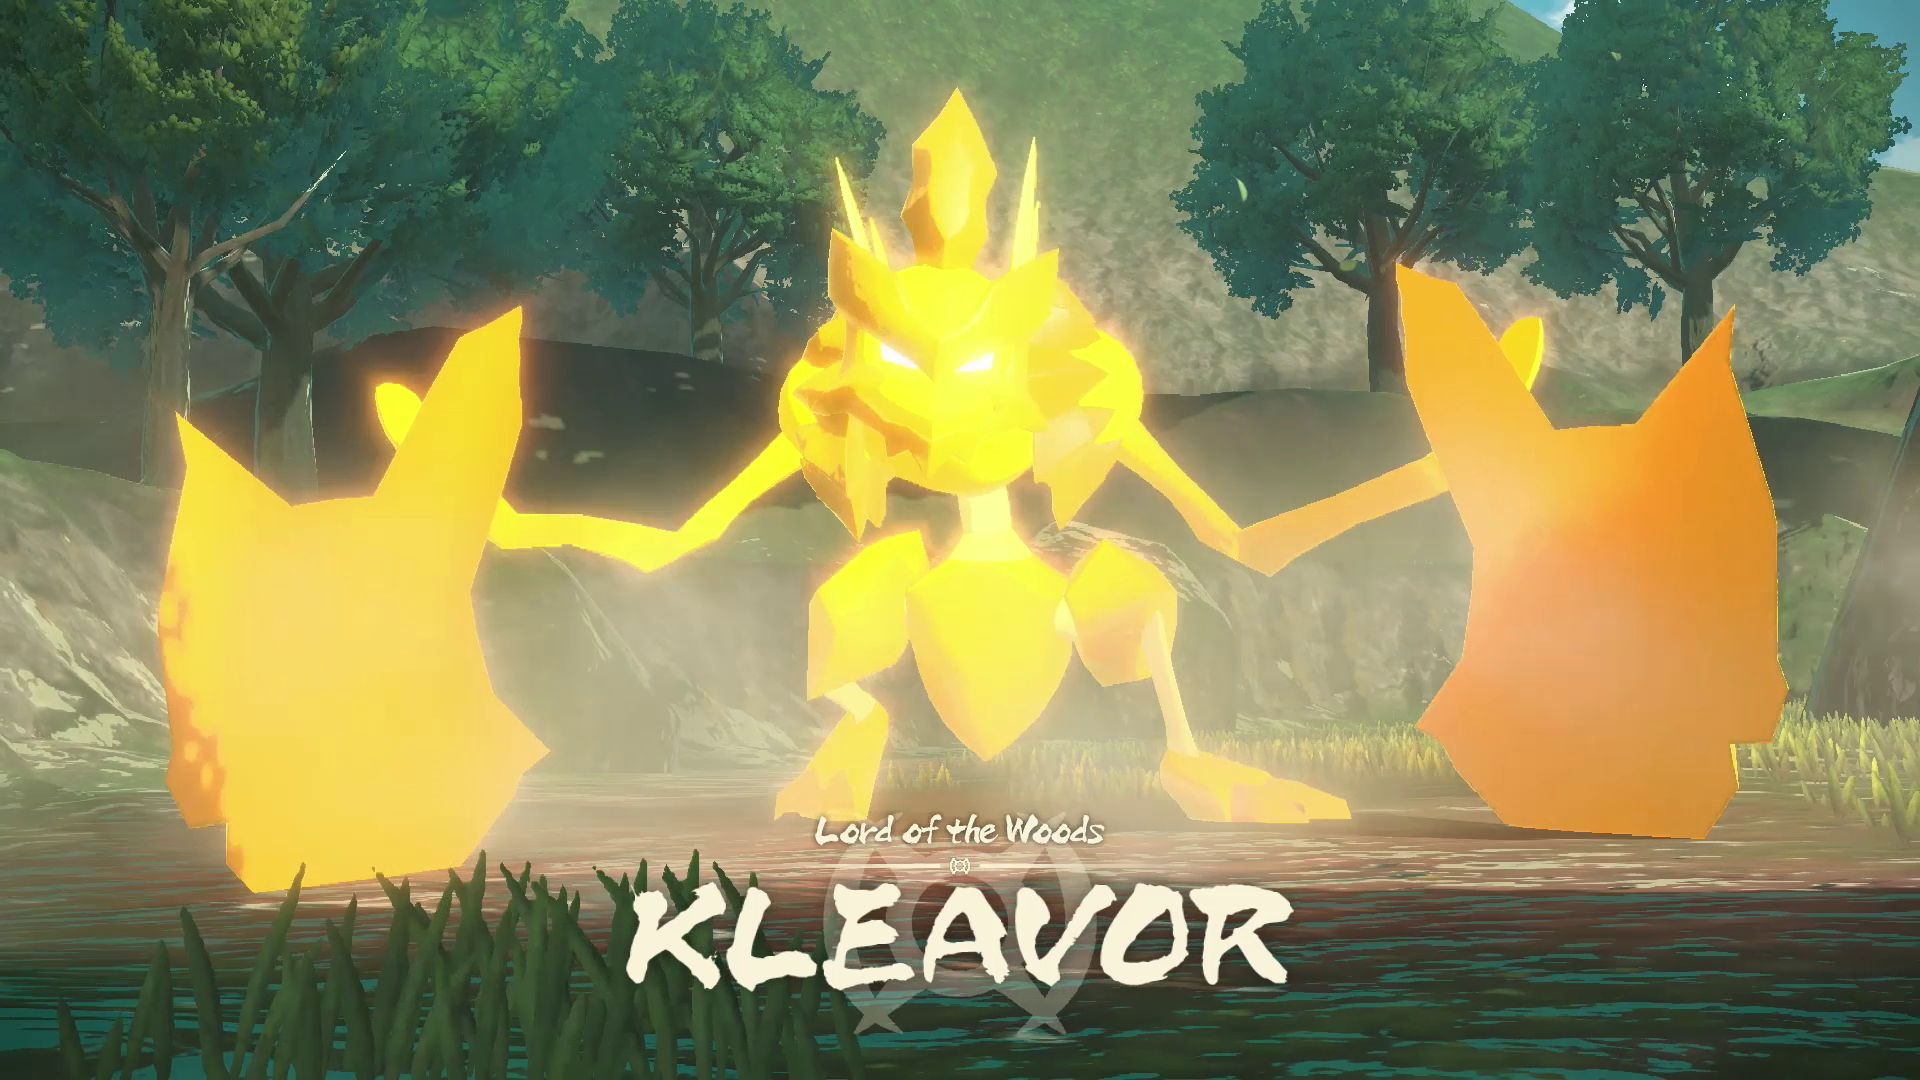 Kleavor, an evolution of Scyther, debuts in Pokémon Legends: Arceus. The formidable Pokémon has large, axe-like hands and has survived many battles with them